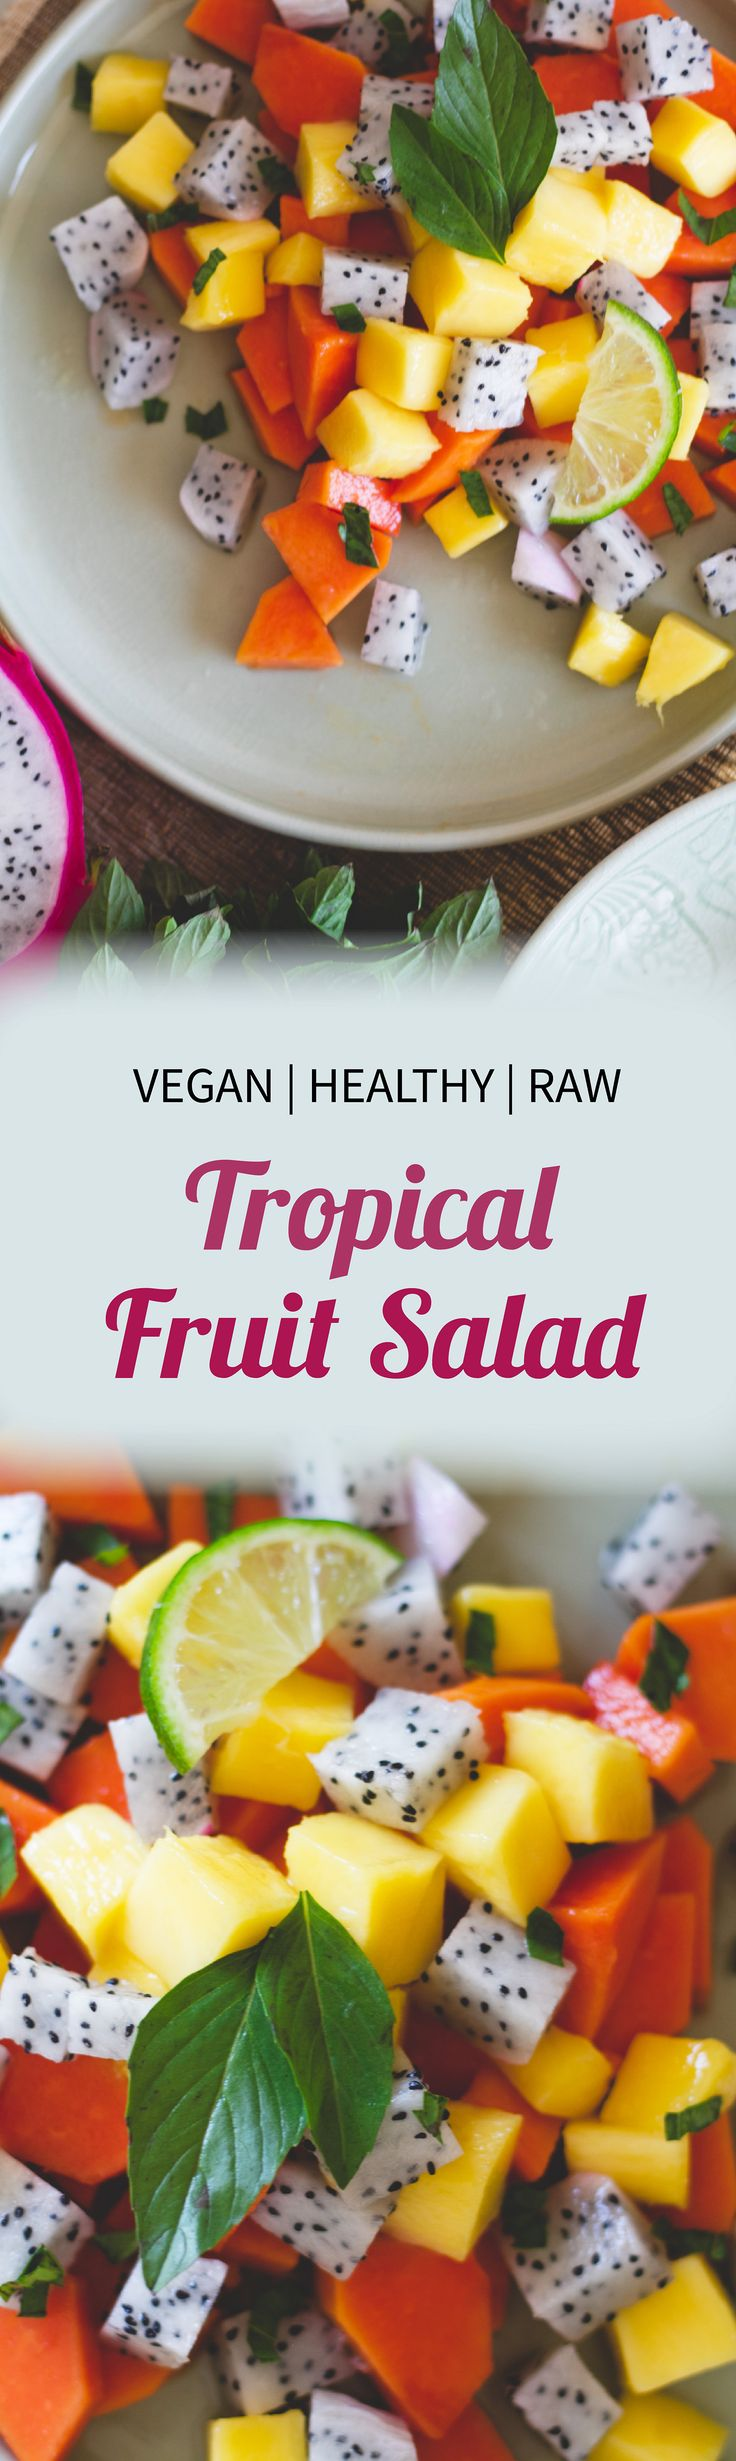 Raw vegan tropical fruit salad recipe